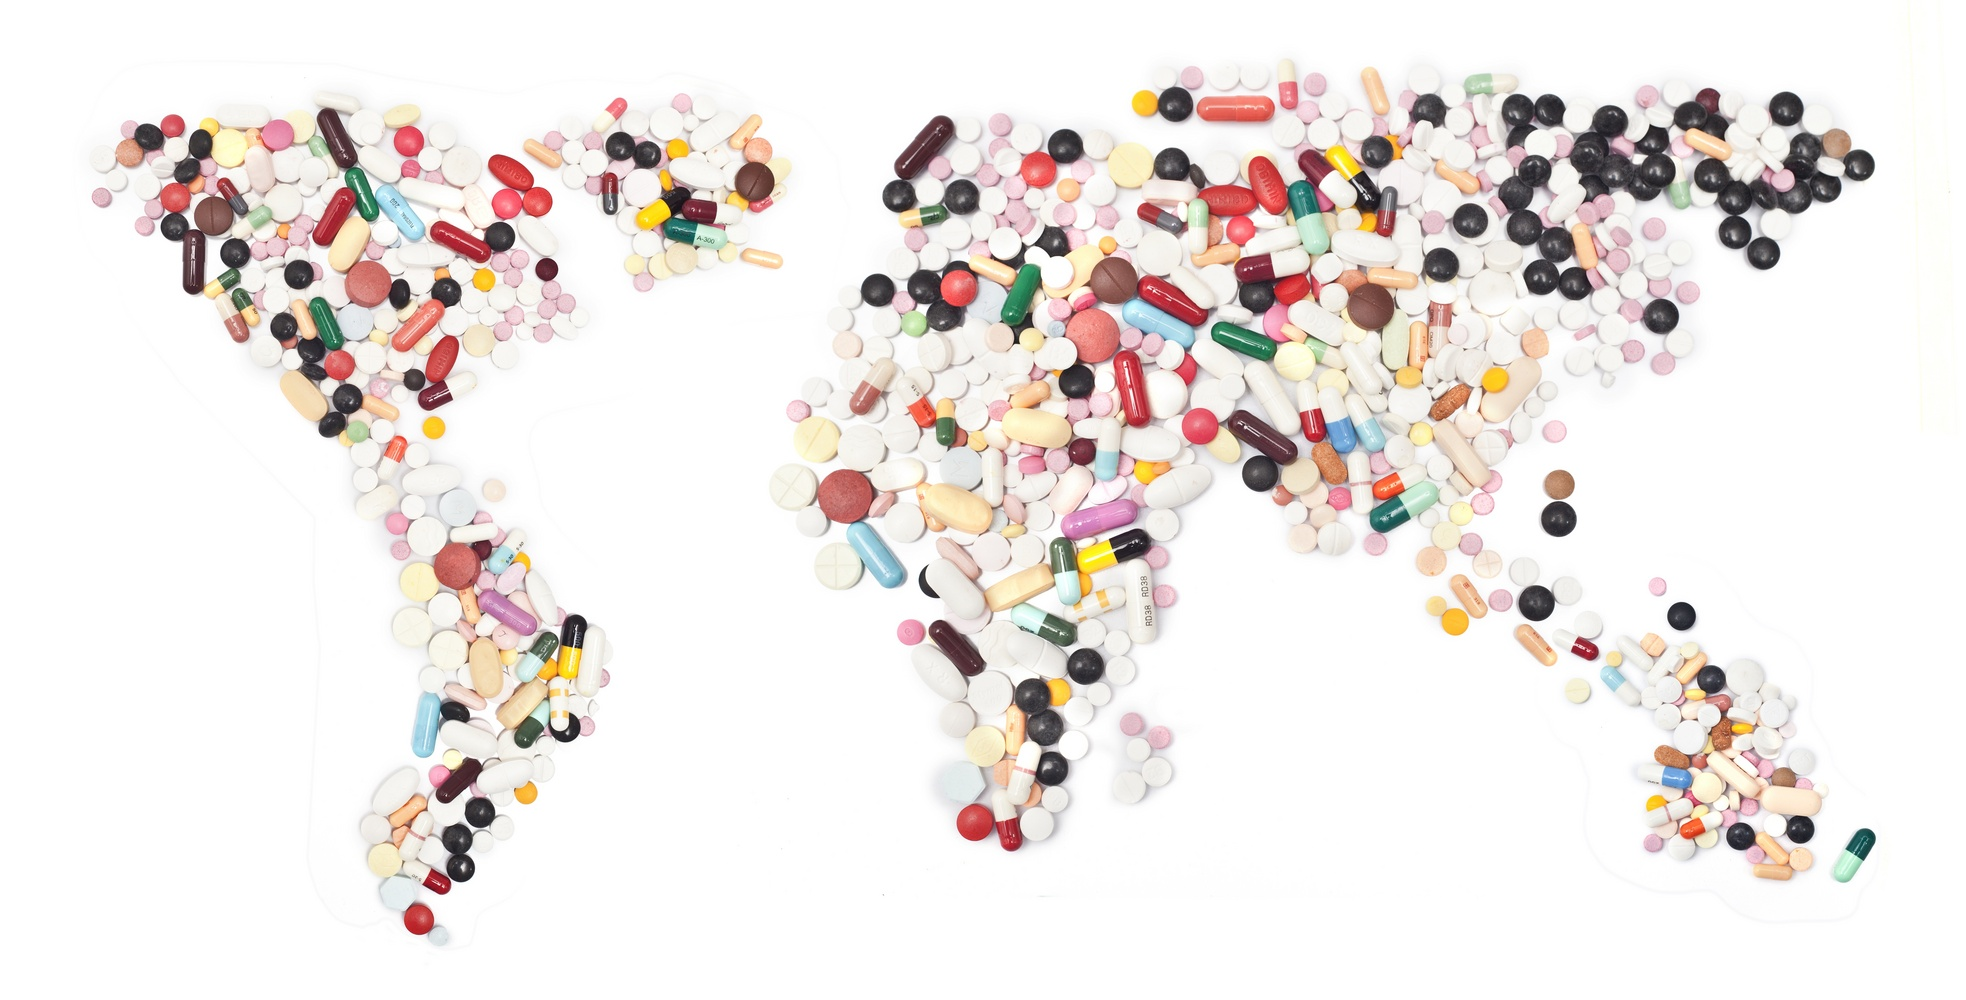 Target Product Profile solution. Graphic of pills in the shape of the globe.